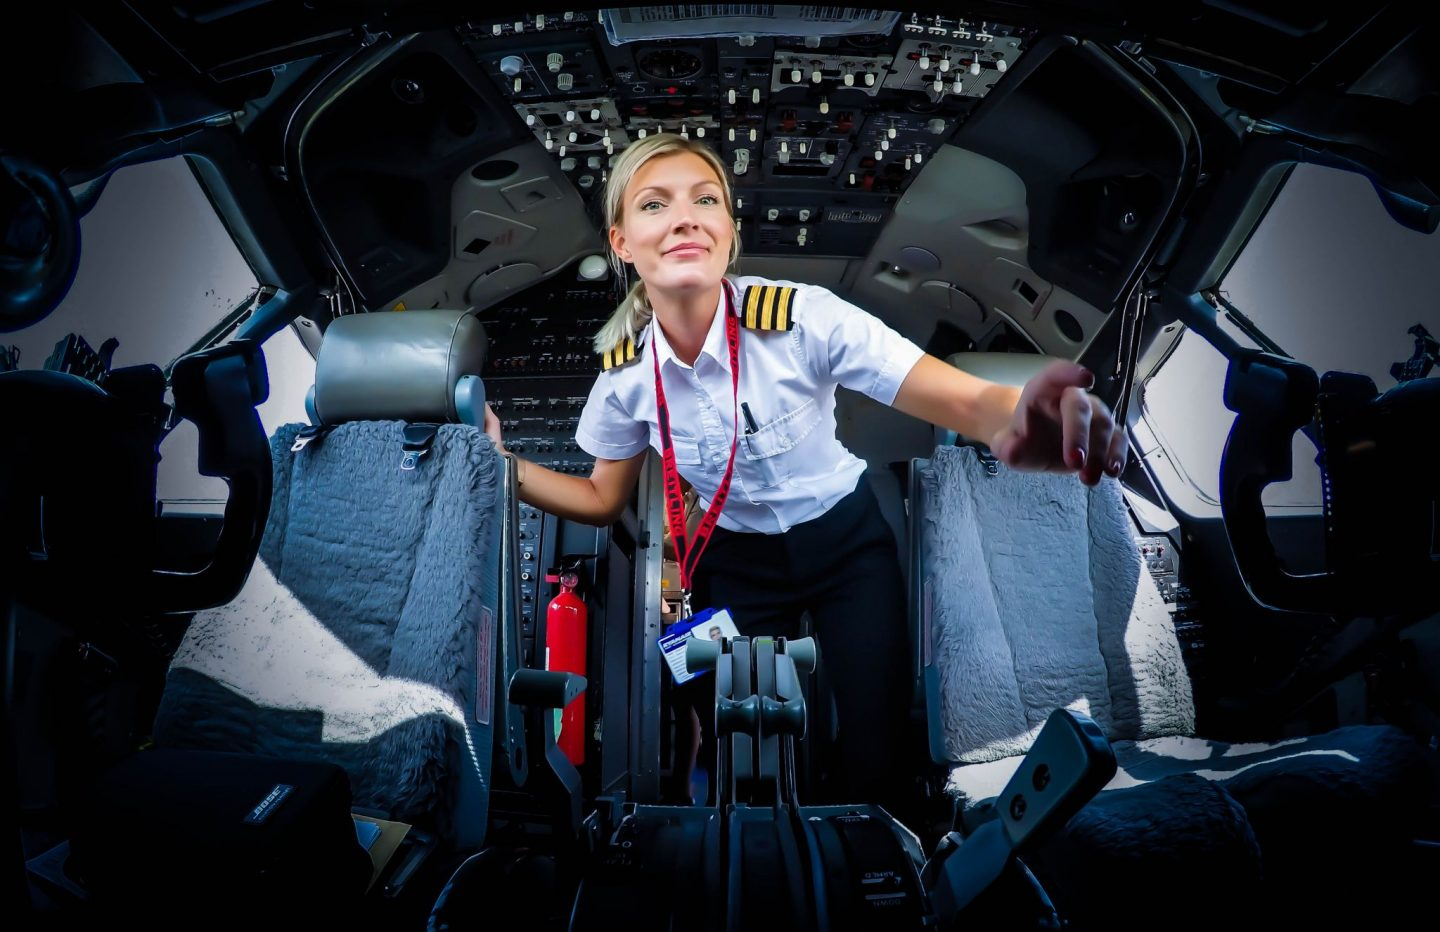 Becoming an airline pilot